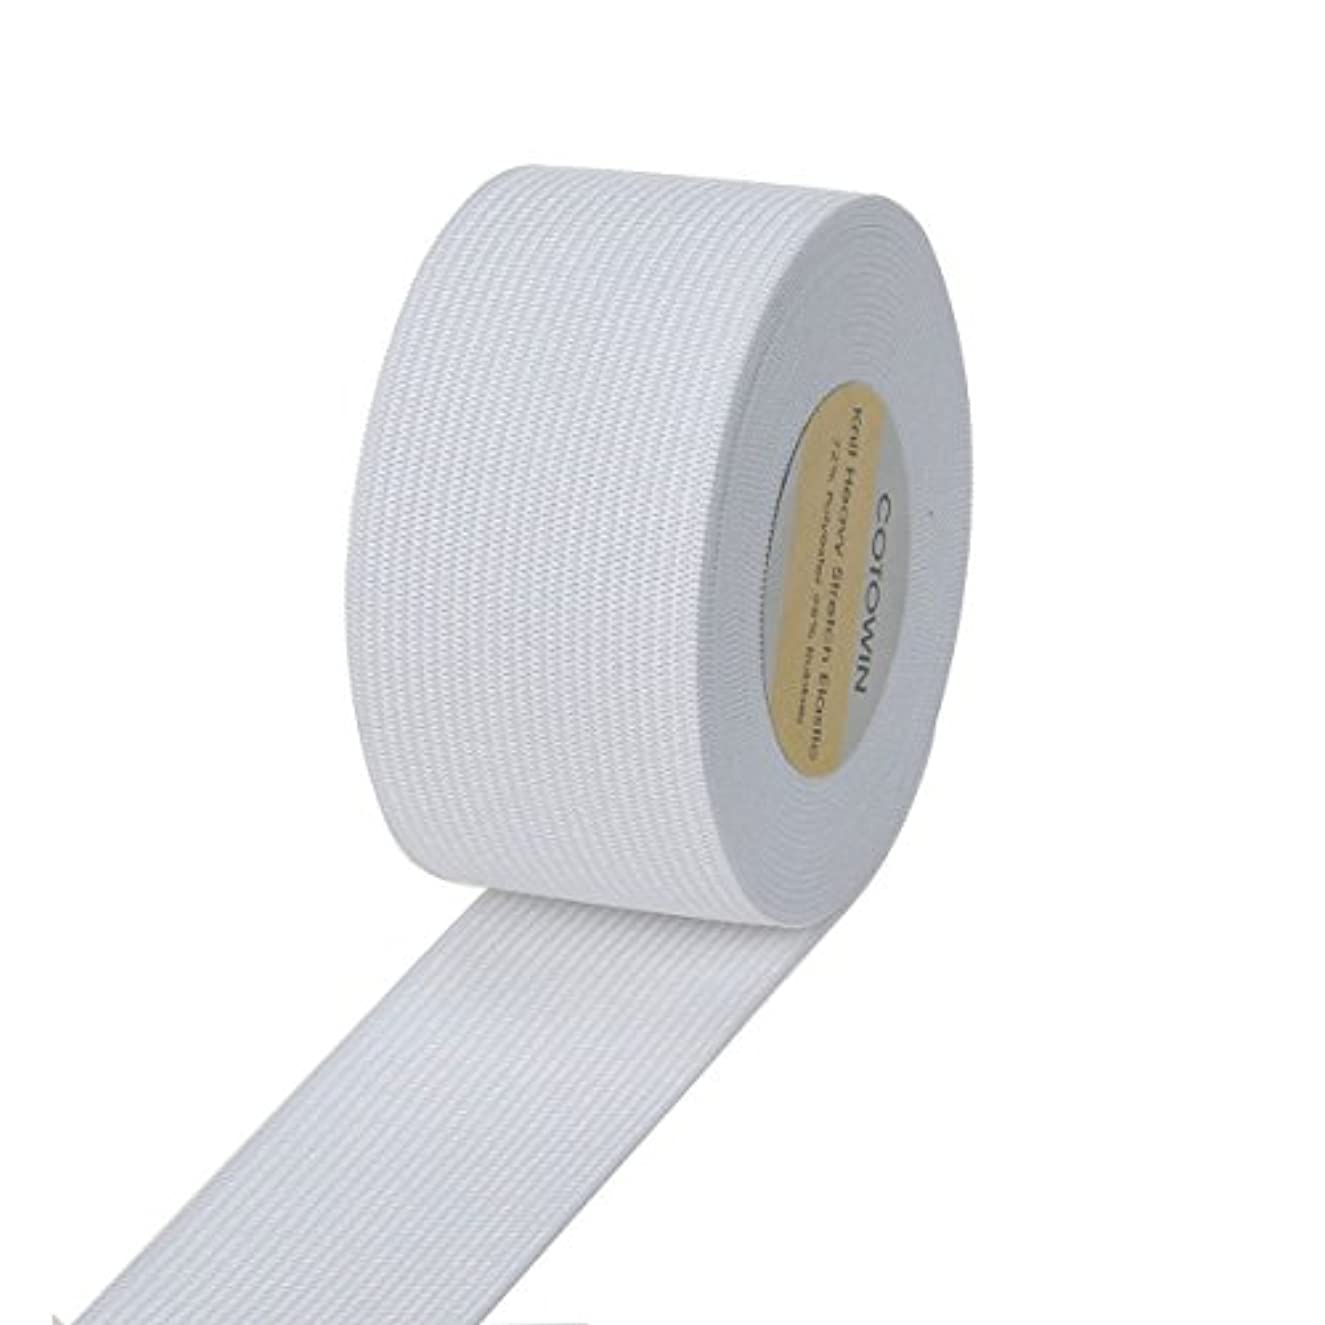 COTOWIN 1.5 Inch Wide White Knit Heavy Stretch High Elasticity Elastic Band 5 Yards